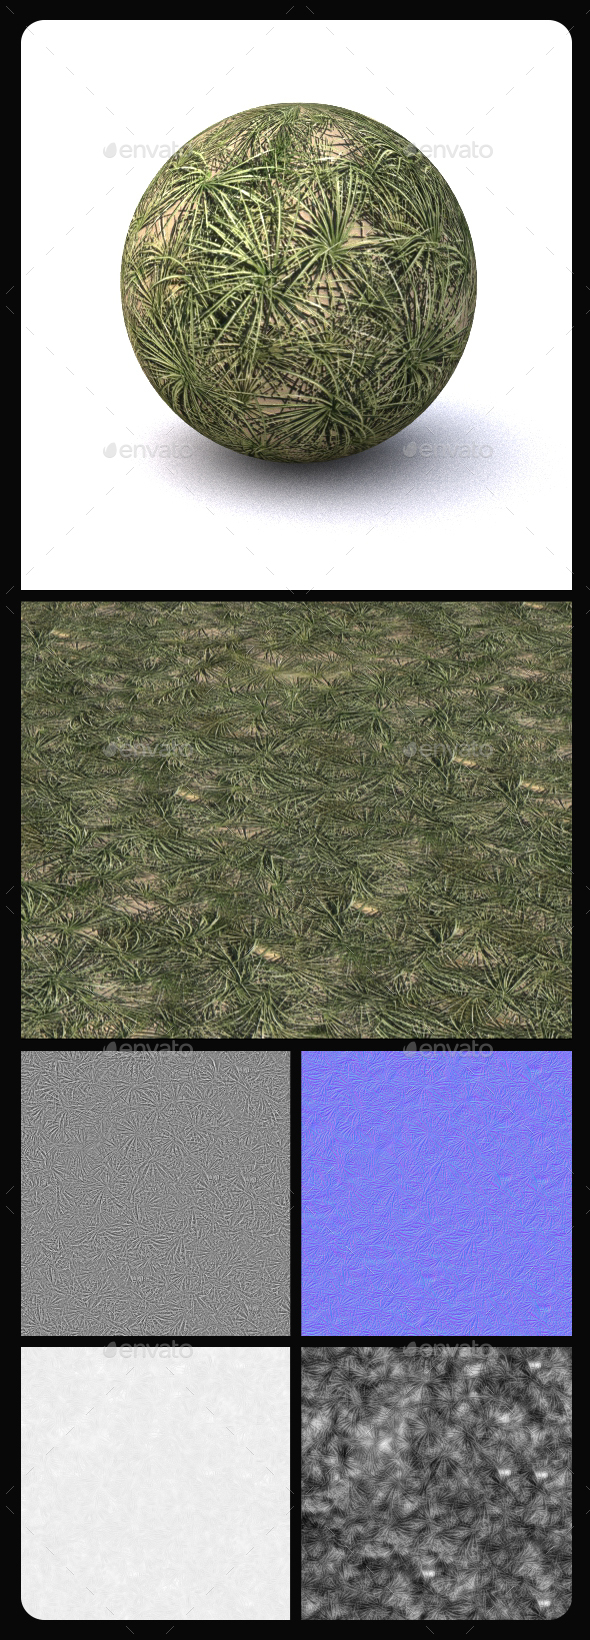 Grass Tile Texture 9 - 3DOcean Item for Sale